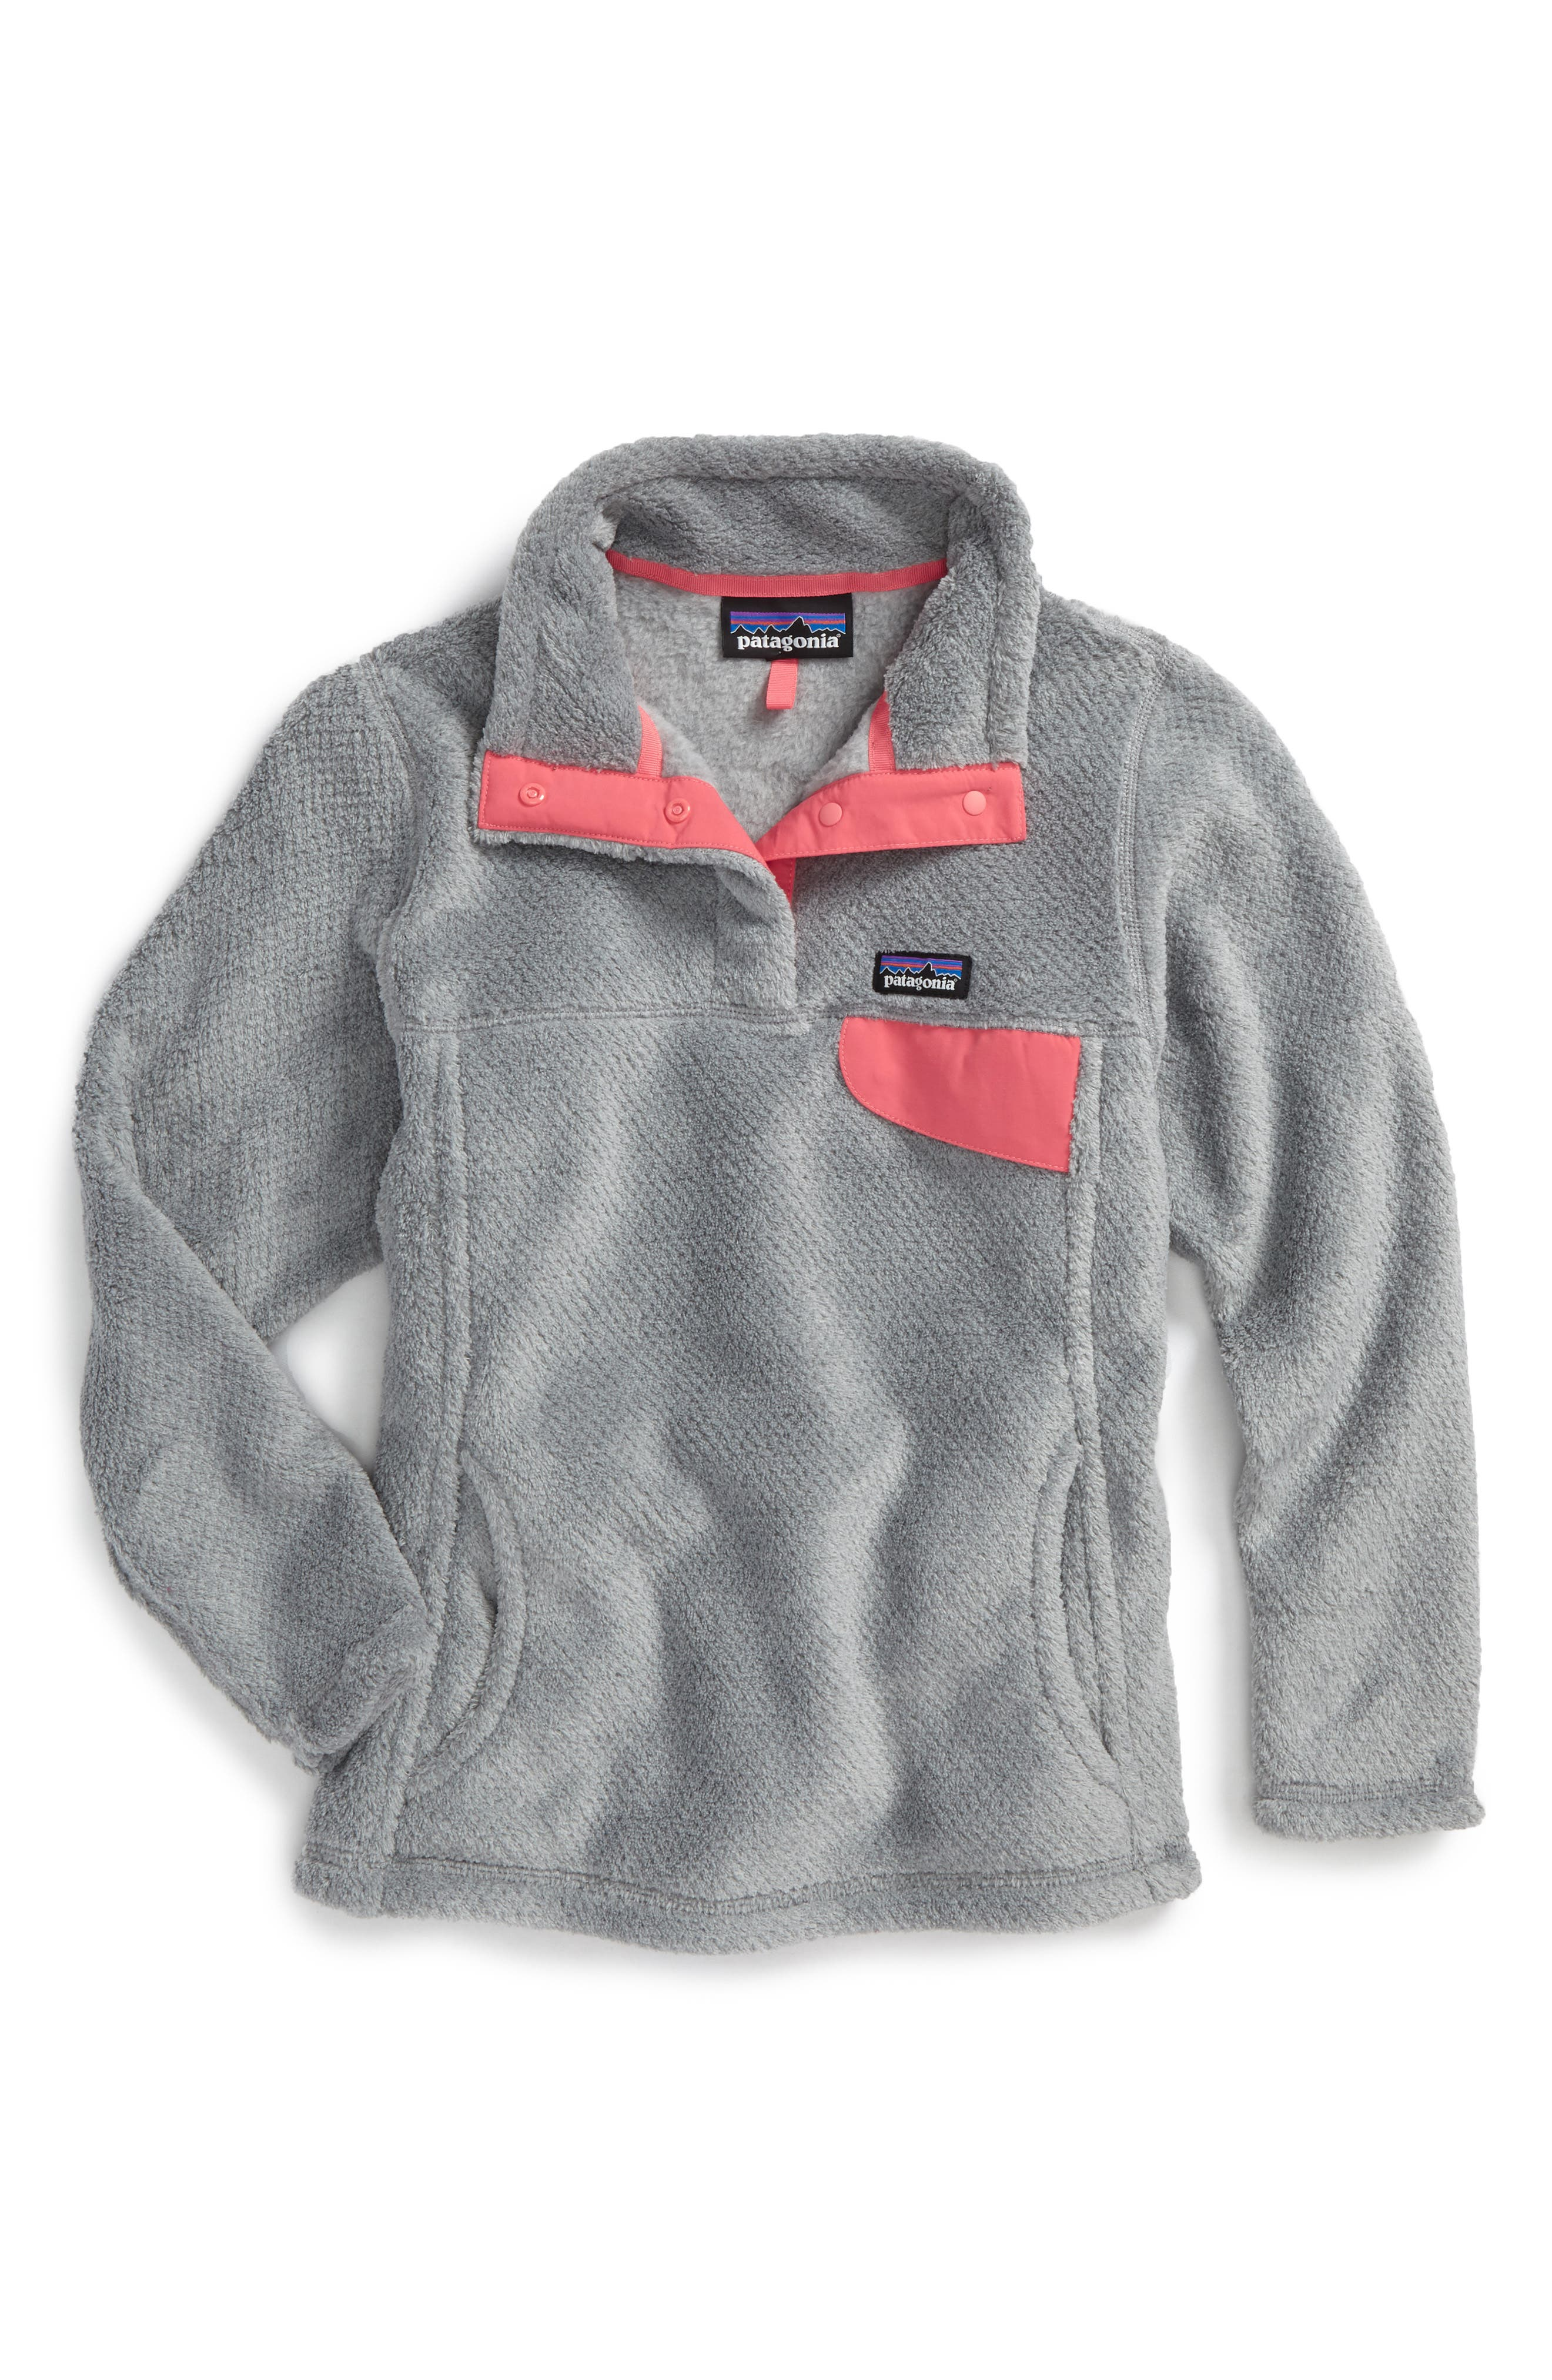 Re-Tool Snap-T<sup>®</sup> Pullover,                             Main thumbnail 1, color,                             020